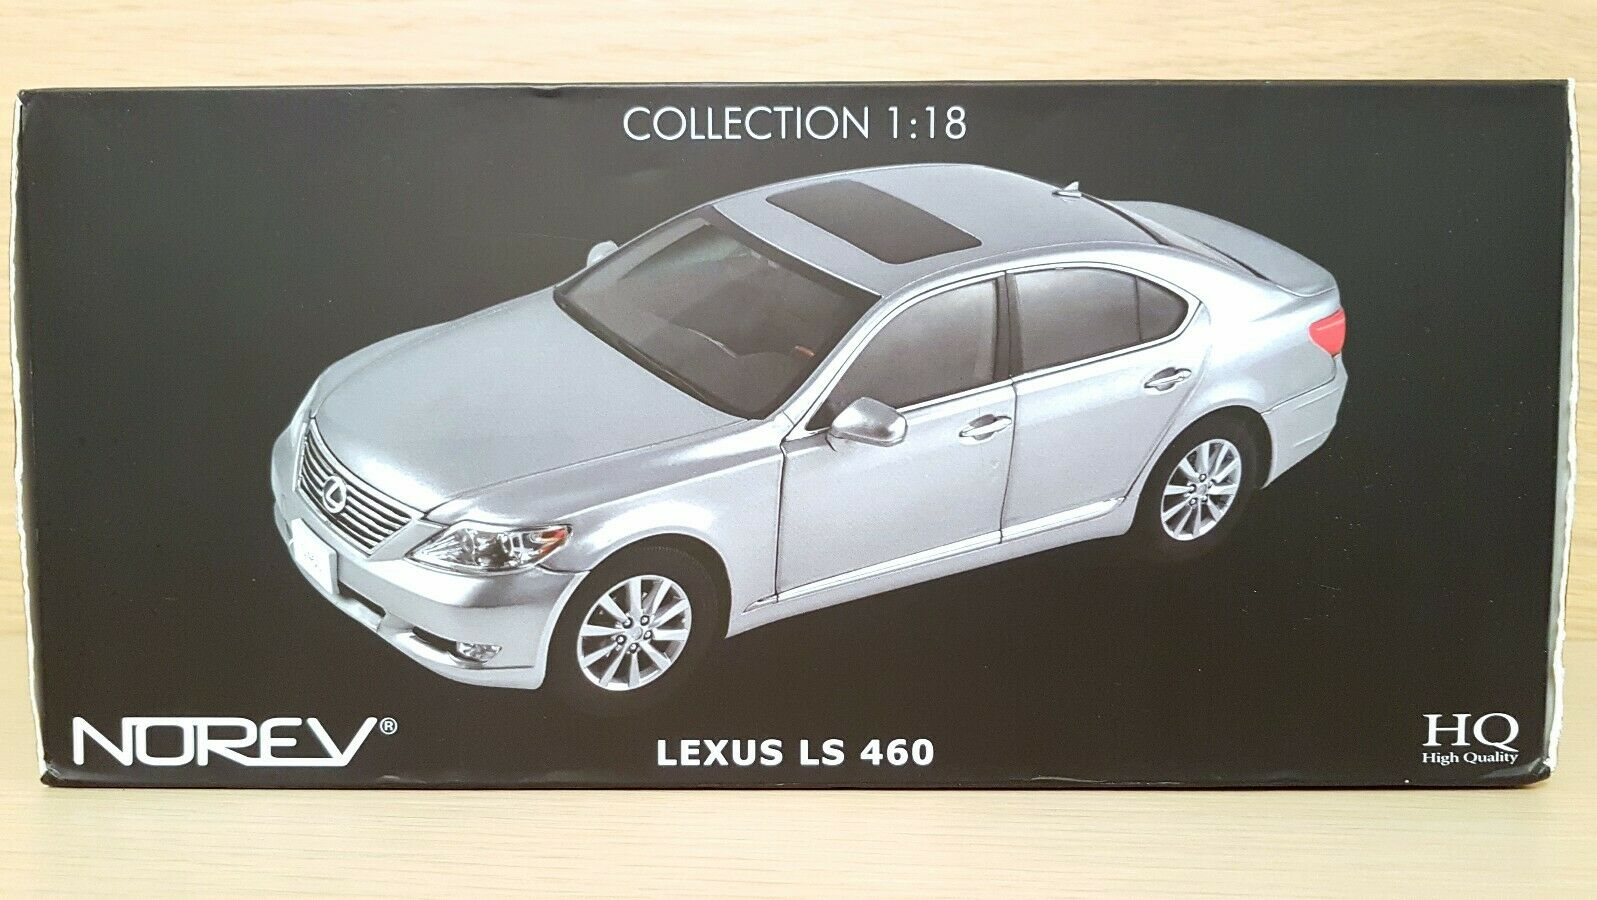 Lexus LS 460 (2006) scala 1 18 Norev High Quality. Very Rare